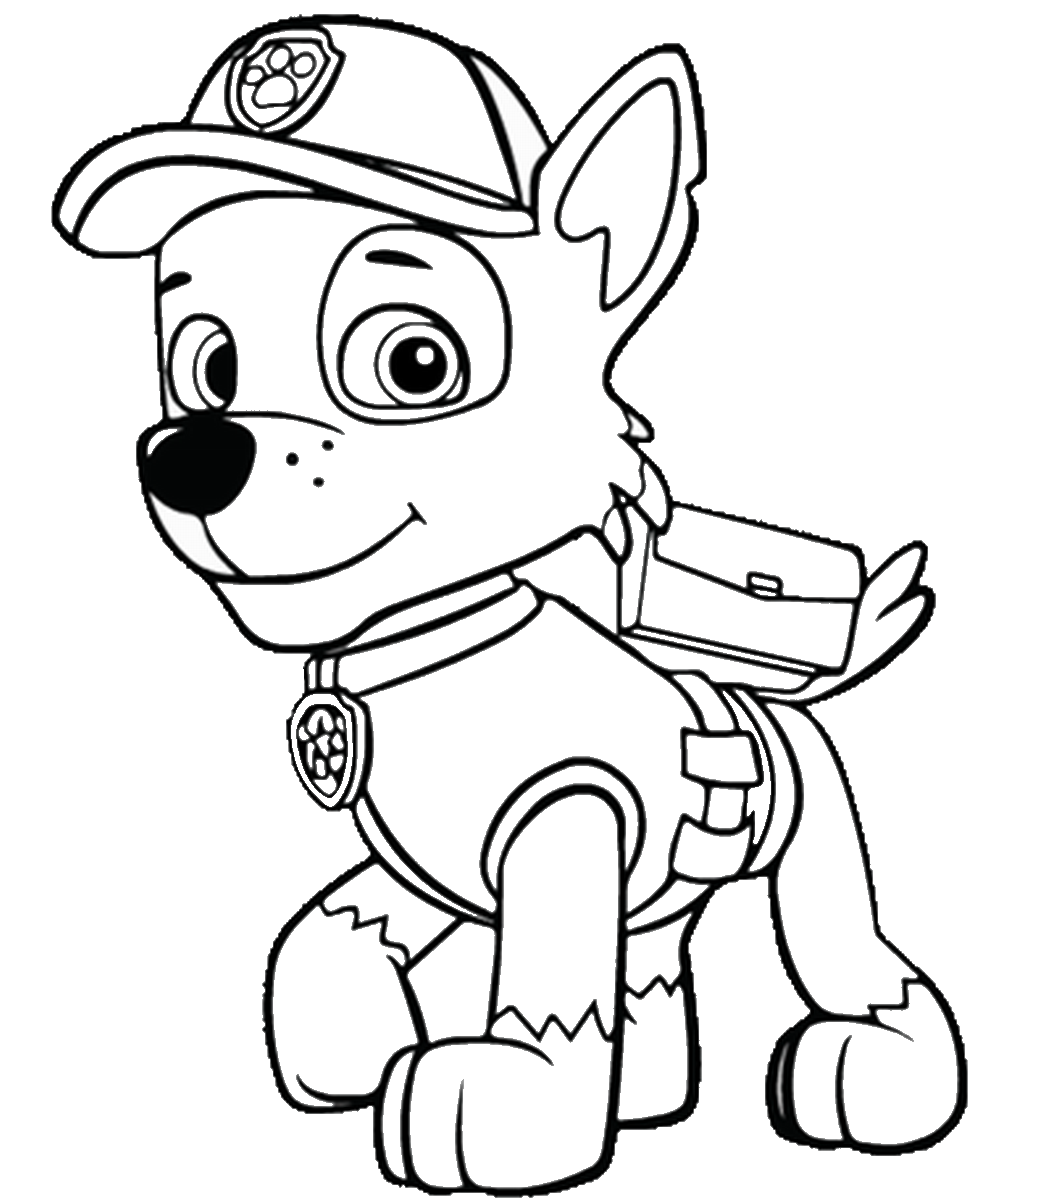 Paw patrol clip art black and white banner free stock 1000+ images about Jett's 4th Paw Patrol Party on Pinterest | The ... banner free stock